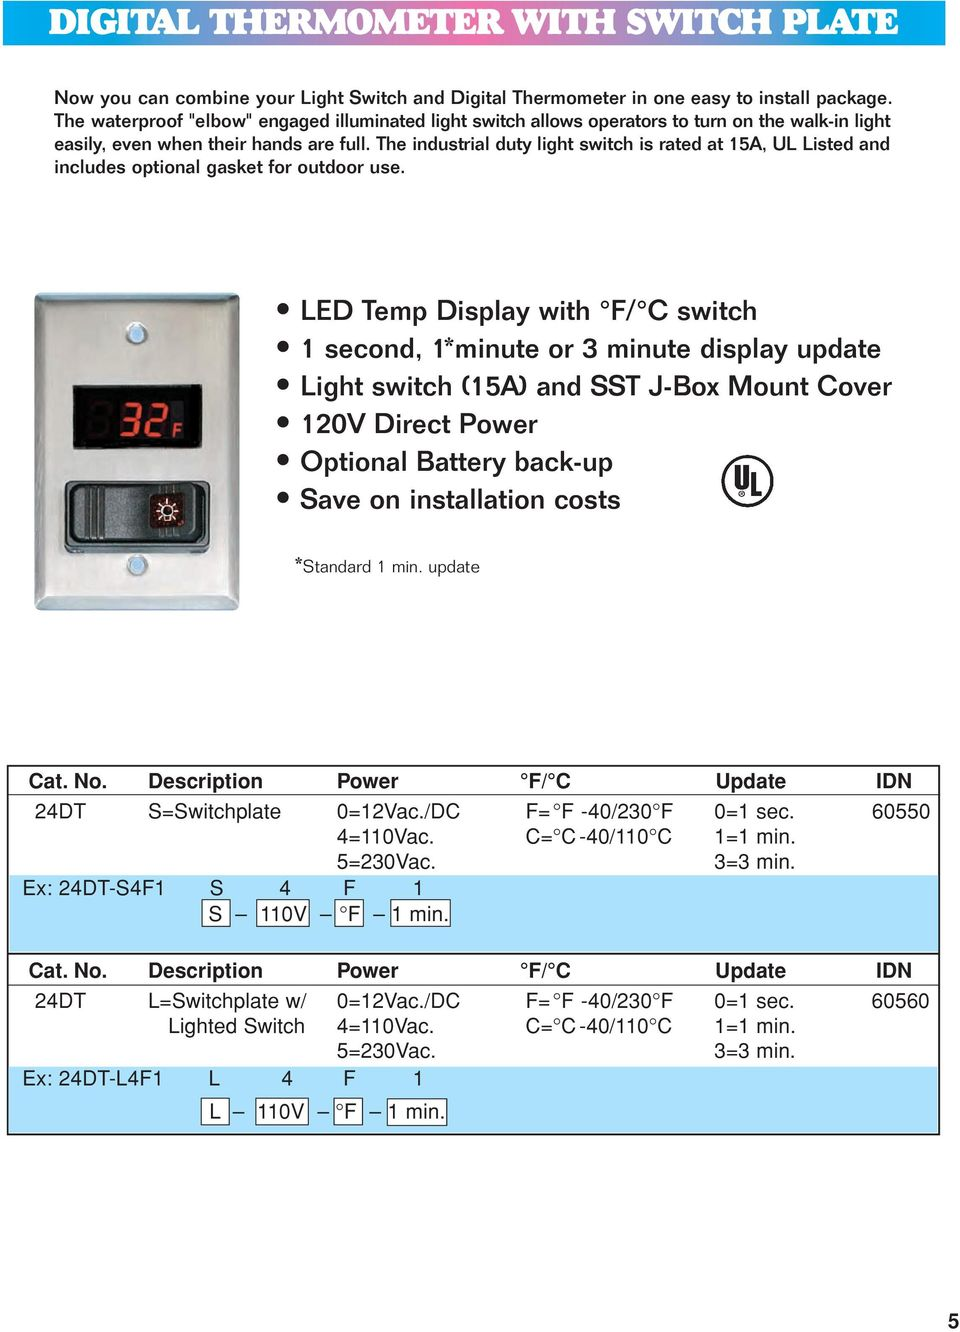 Thermometers Temperature Controllers Pressure Gauges Hvac R 4 Wire Thermometer Diagram The Industrial Duty Light Switch Is Rated At 15a Ul Listed And Includes Optional Gasket